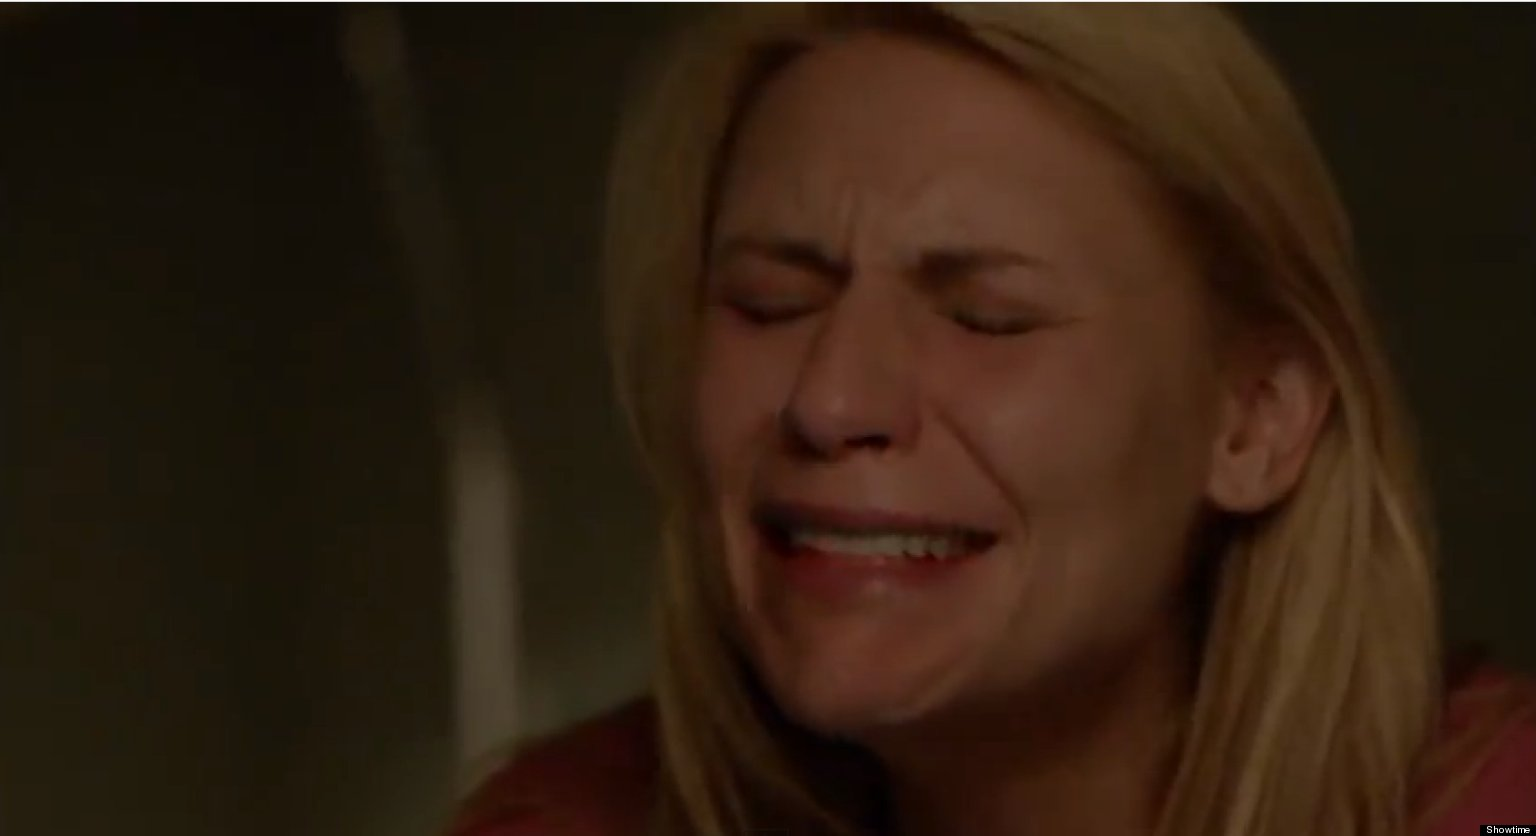 Claire Danes Talks 'Cry Face,' Says It's Been 'Objectified'   HuffPost Claire Danes